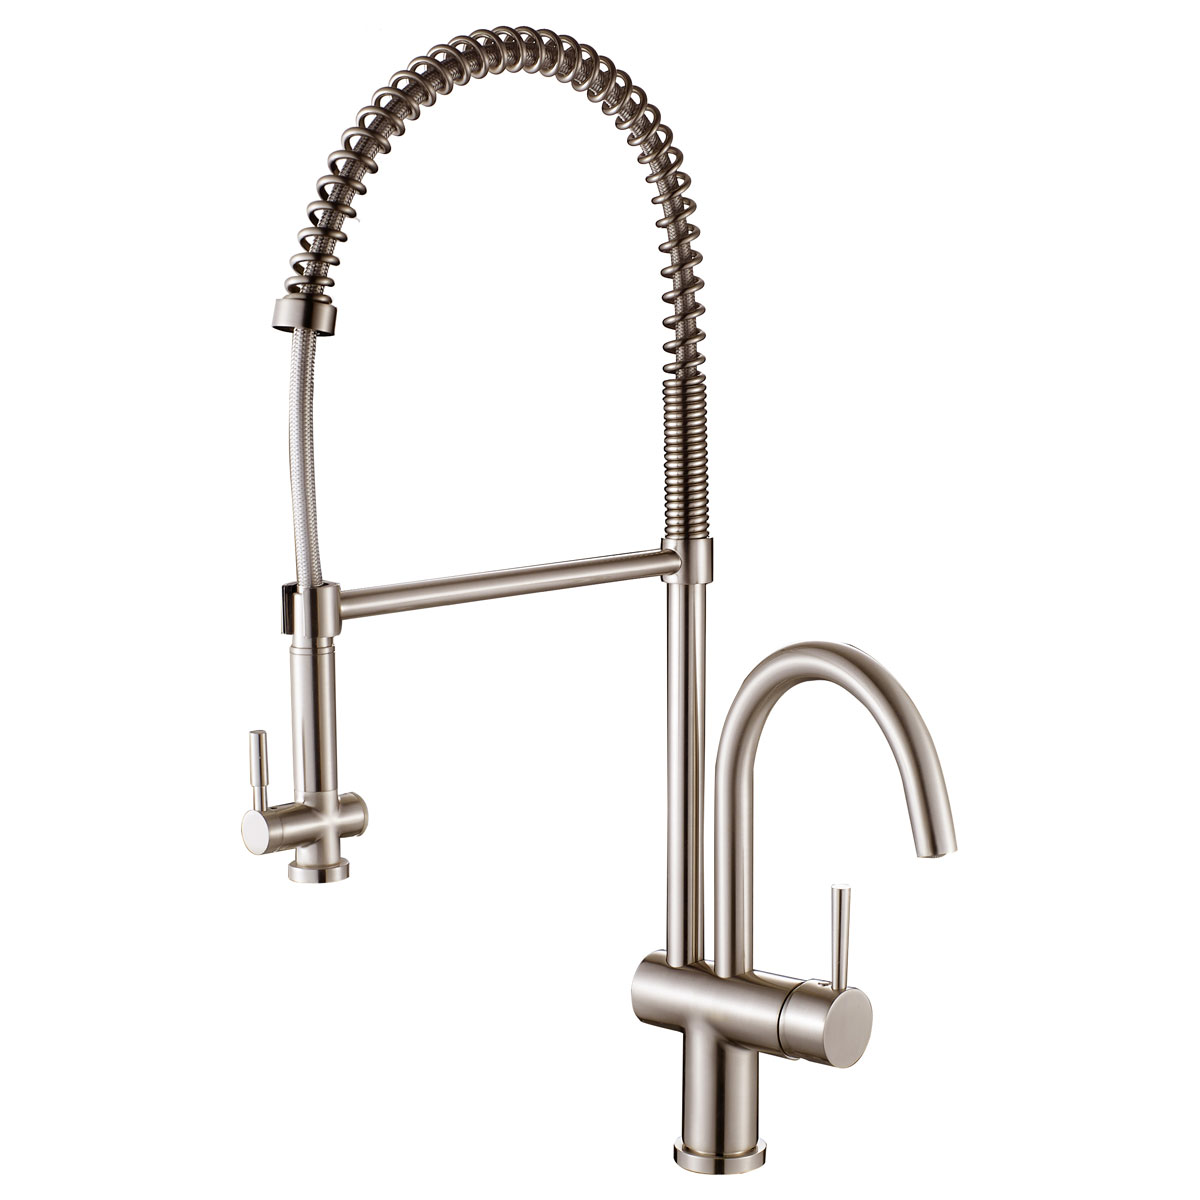 LessCare LK16B Spring-Type Pull-Out Kitchen Faucet in Brushed Nickel ...